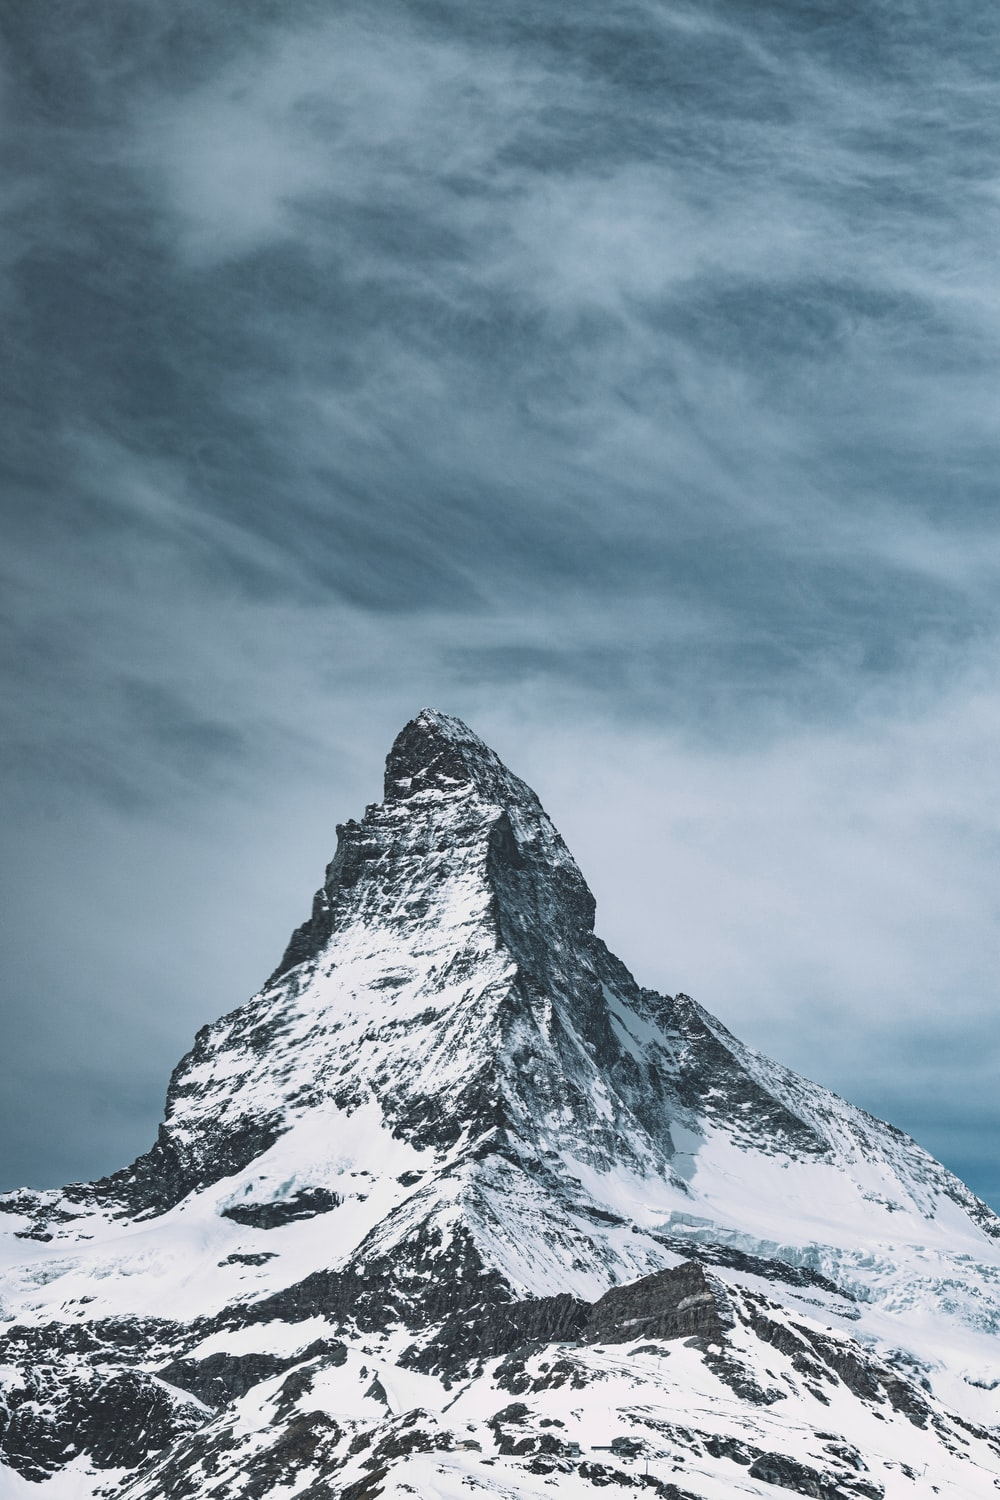 snow-capped mountain during daytime